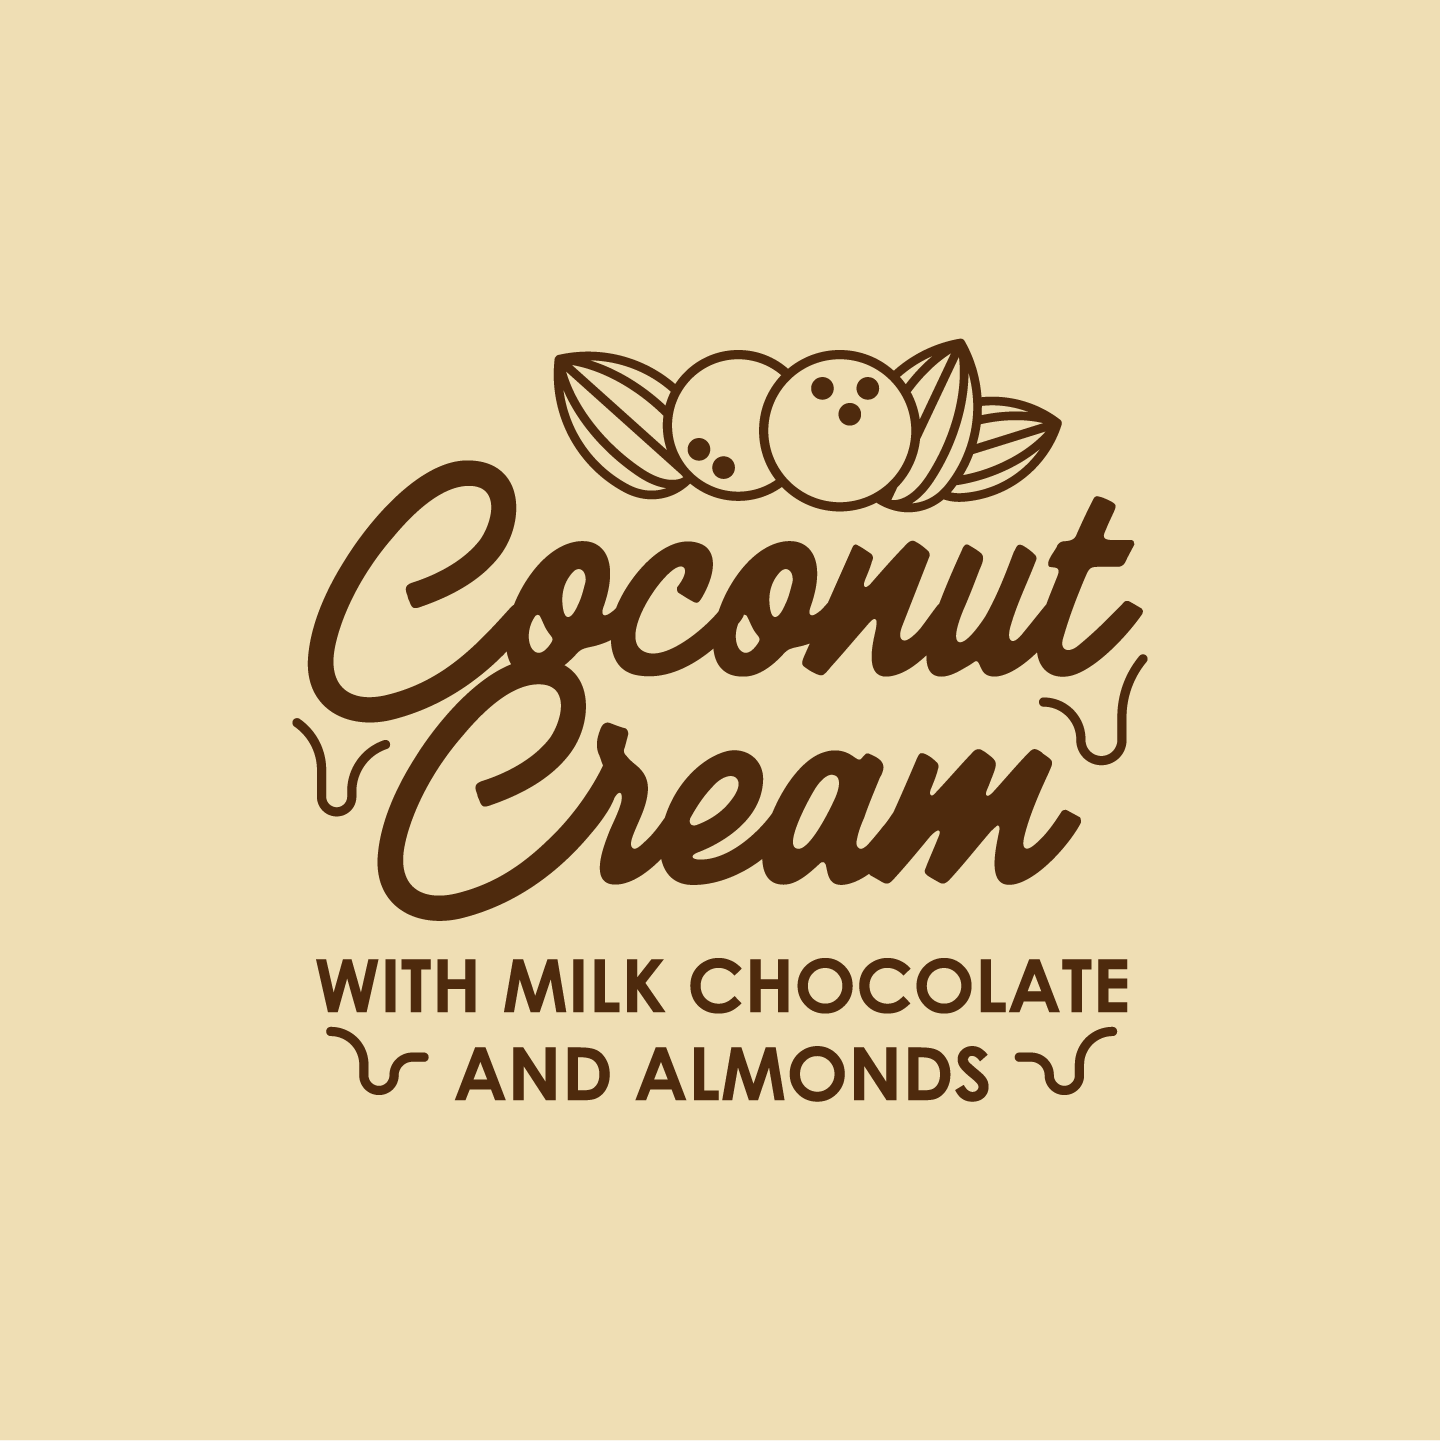 Coconut Cream with Milk Chocolate & Almonds 500ml Tub